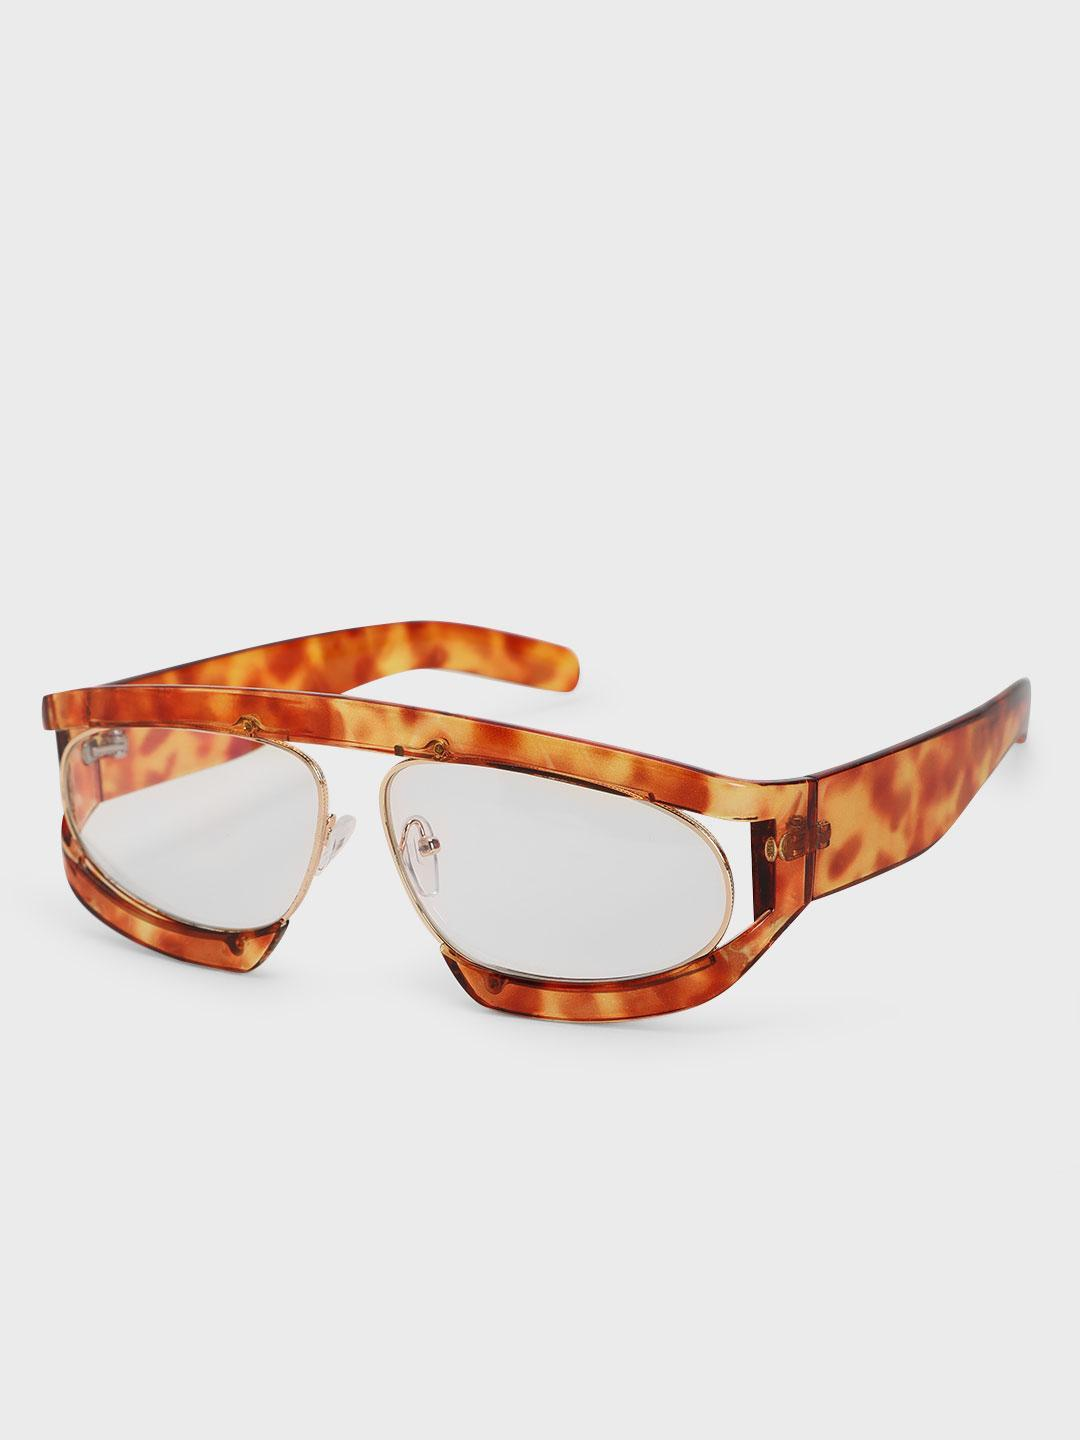 Pataaka Orange Textured Frame Retro Sunglasses 1